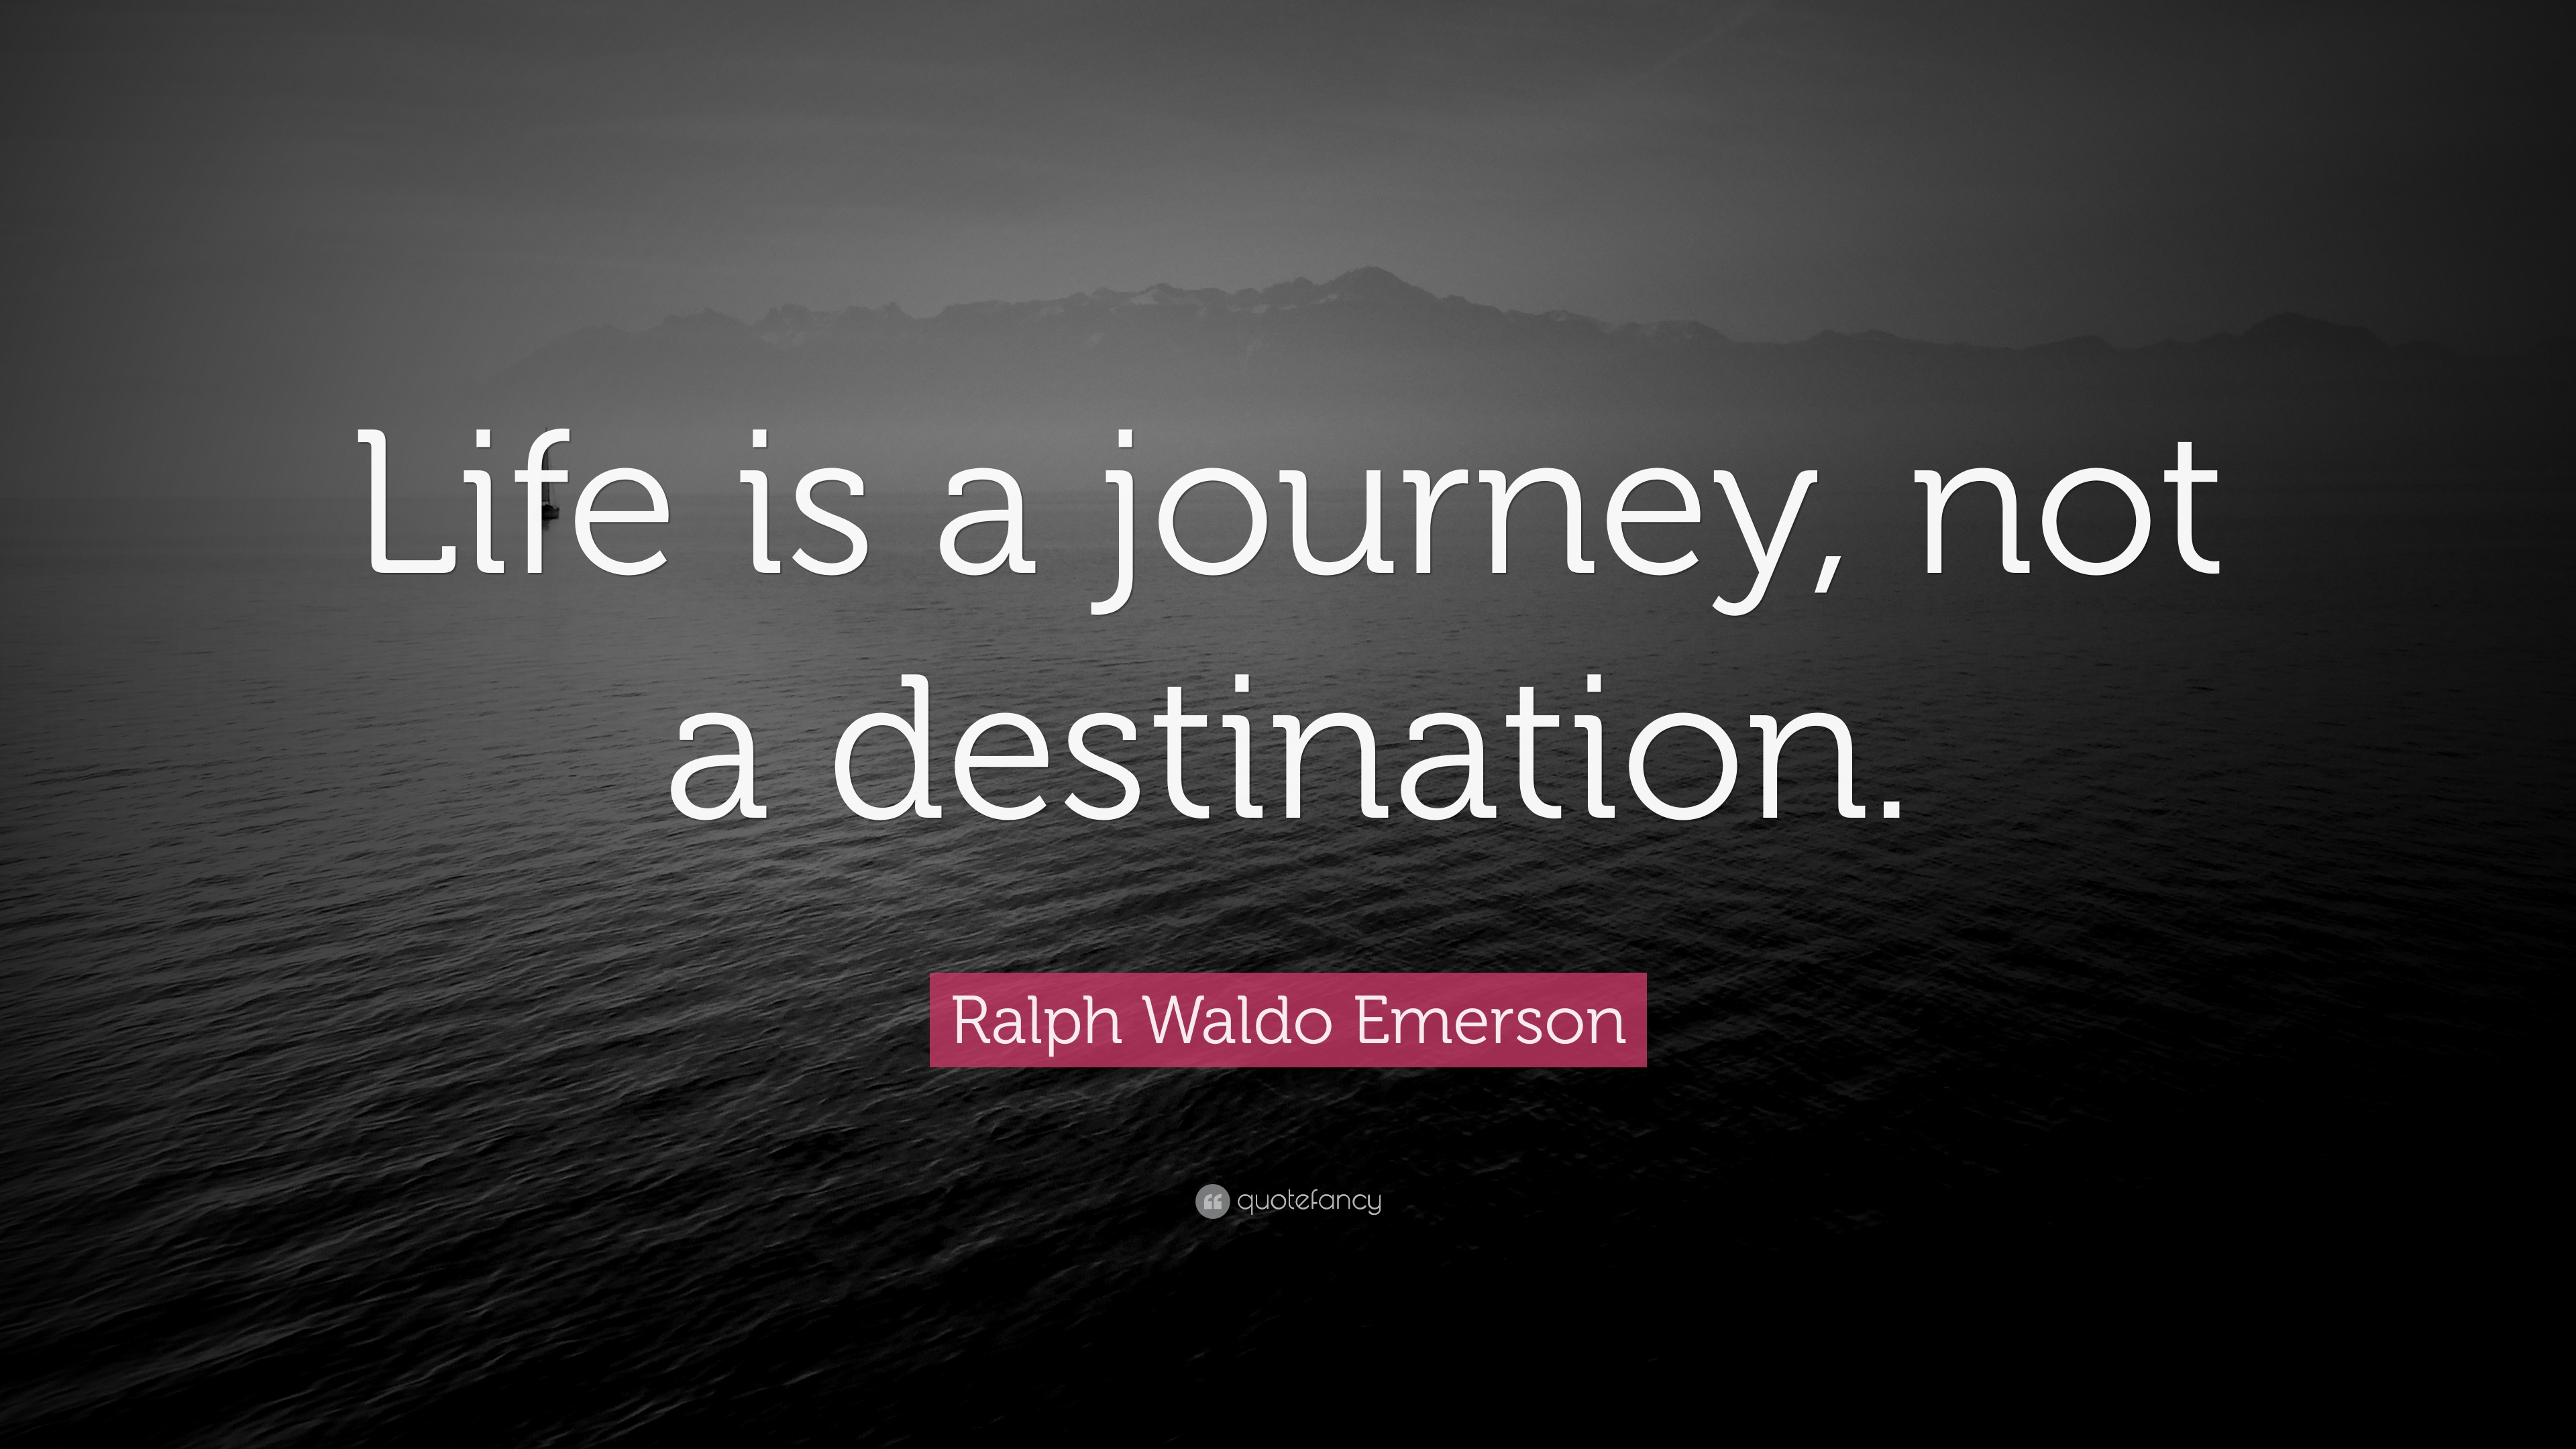 Ralph waldo emerson quote life is a journey not a destination ralph waldo emerson quote life is a journey not a destination stopboris Image collections